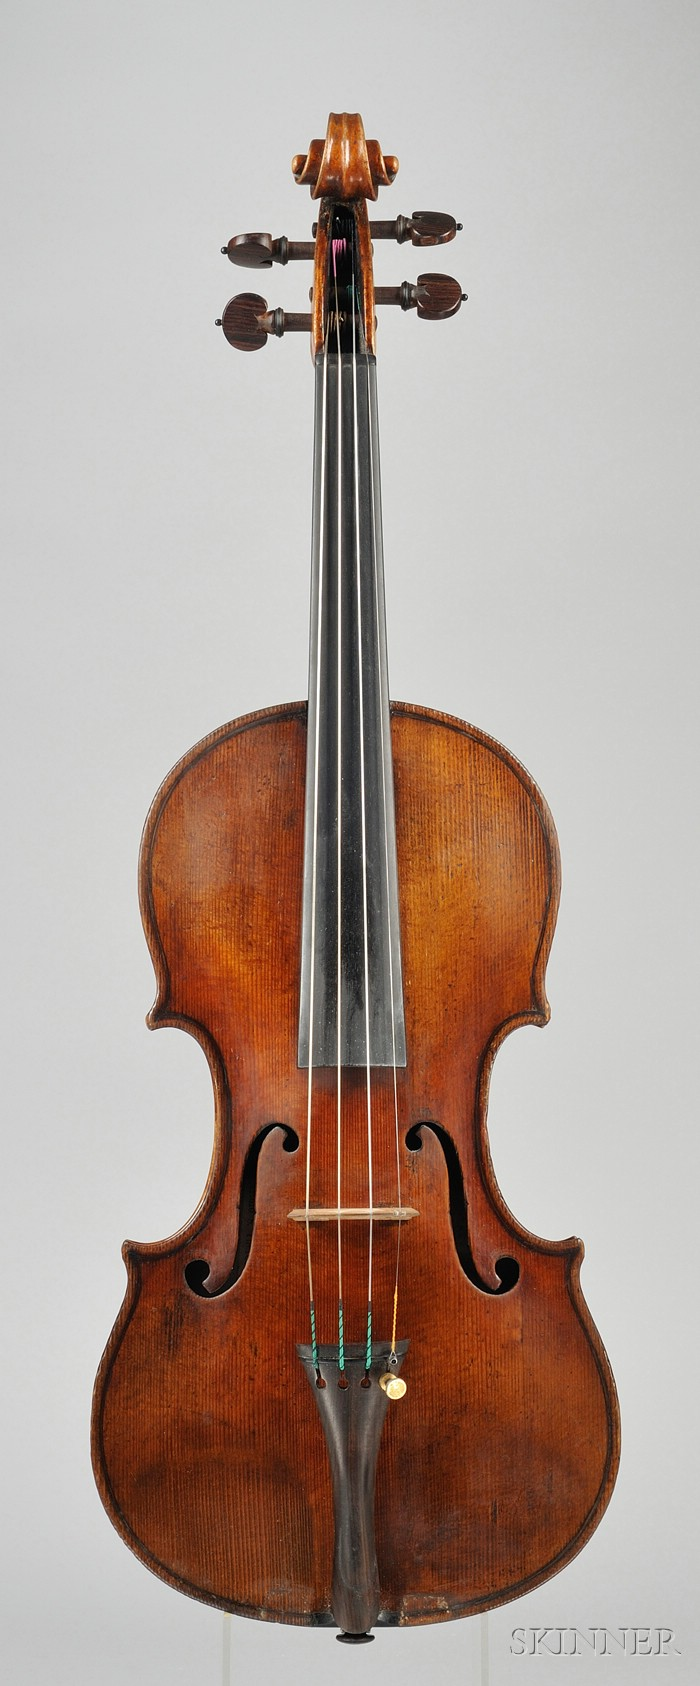 Italian Violin, Attributed to and Probably by Enrico Ceruti, Cremona, 1846